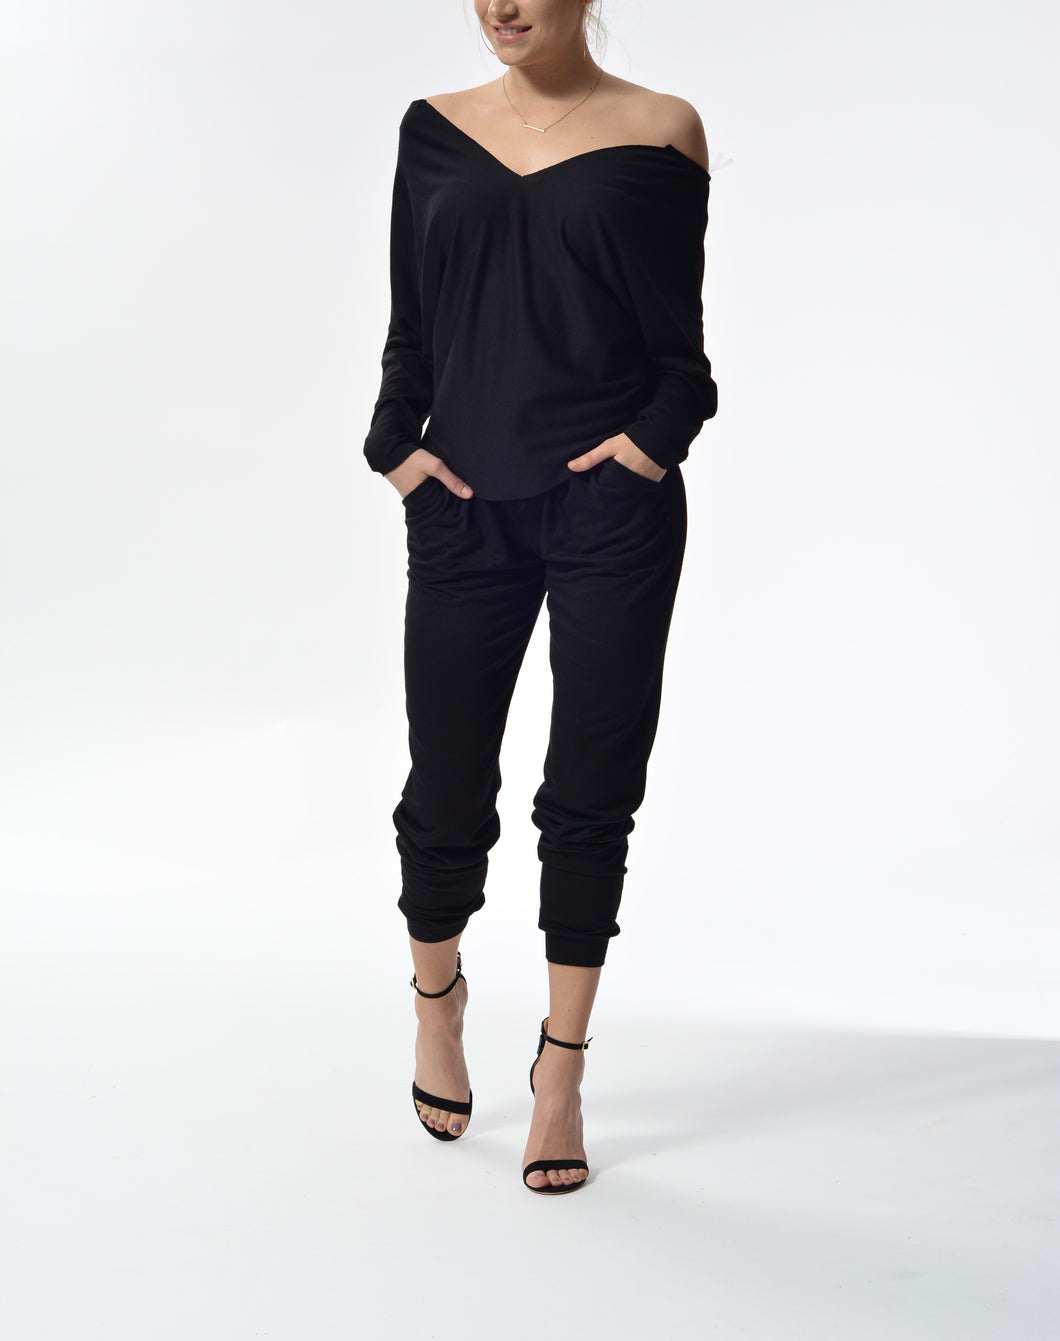 JESSICA - Drawstring Pants - Black